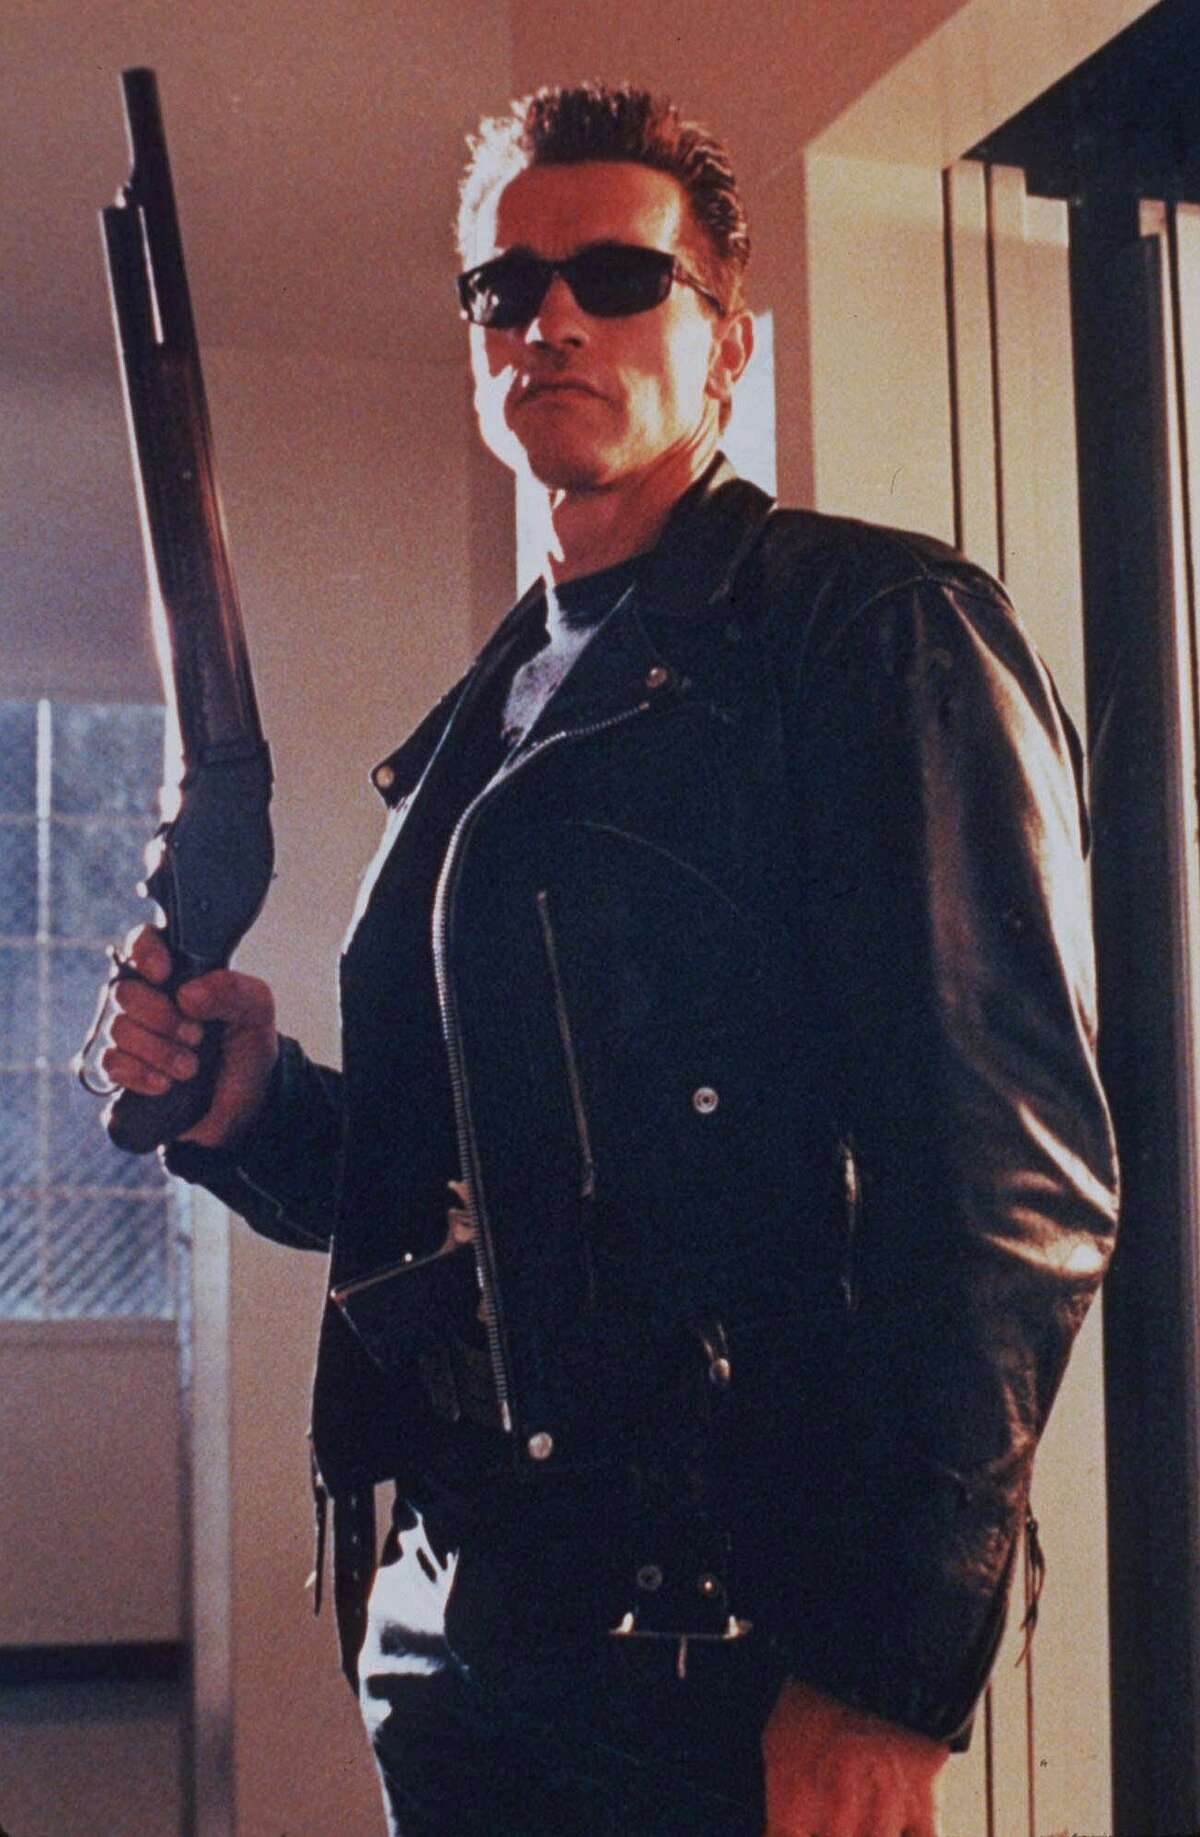 FILE-- Arnold Schwarzenegger is shown in this undated file photo from a scene in the movie 'Terminator 2.' Schwarzenegger is in talks to reprise his cyborg role in a third installment of the ''Terminator'' franchise with James Cameron planning to write and produce the movie, Daily Variety reported Tuesday, Dec. 15 1998. No deals have been signed, but enthusiasm is high, the industry publication said. (AP Photo/file)